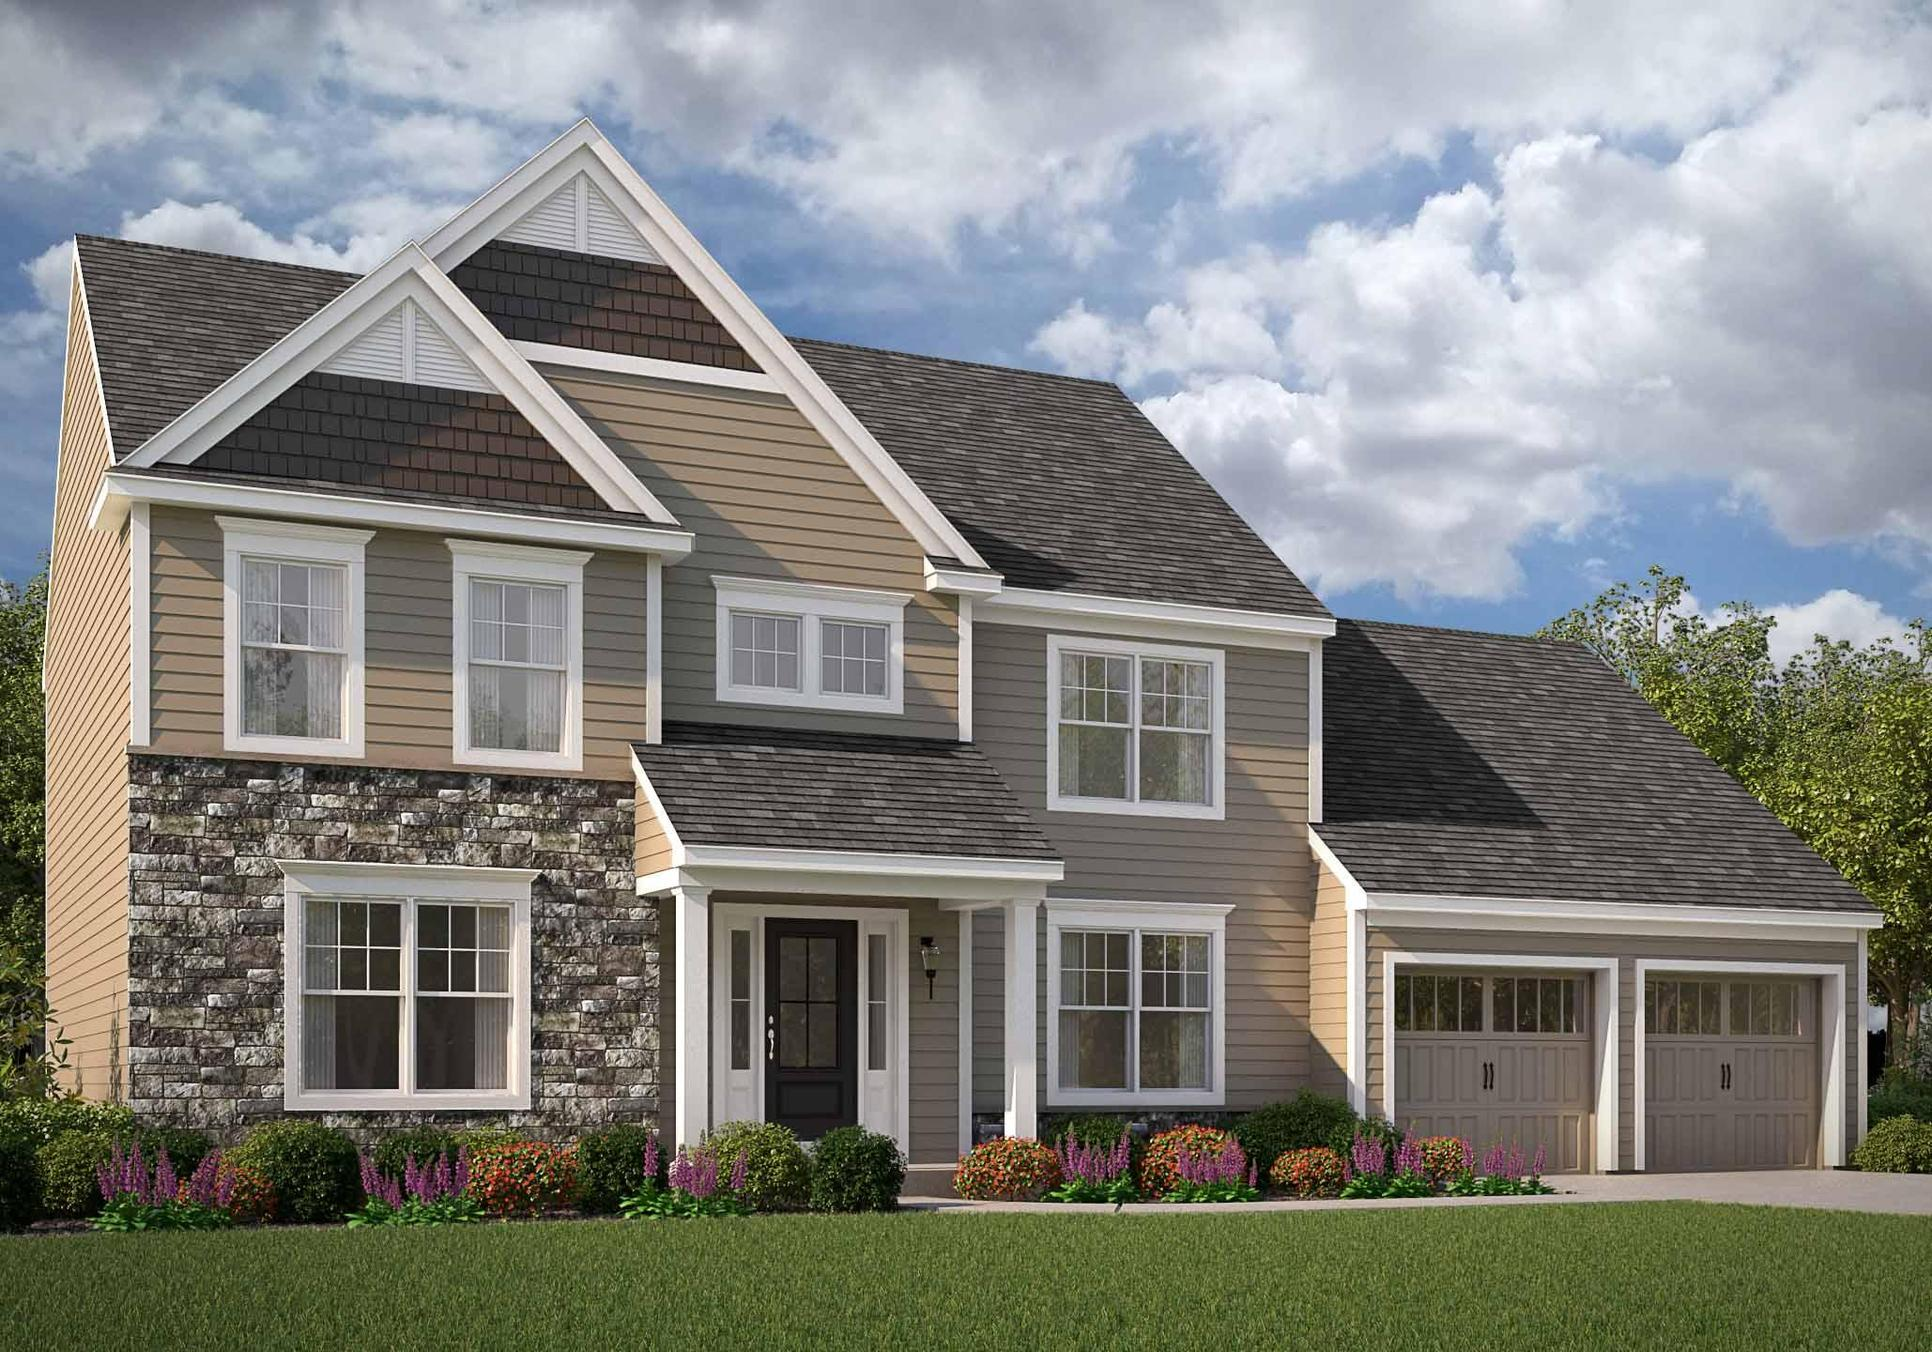 Brentwood American:Elevation